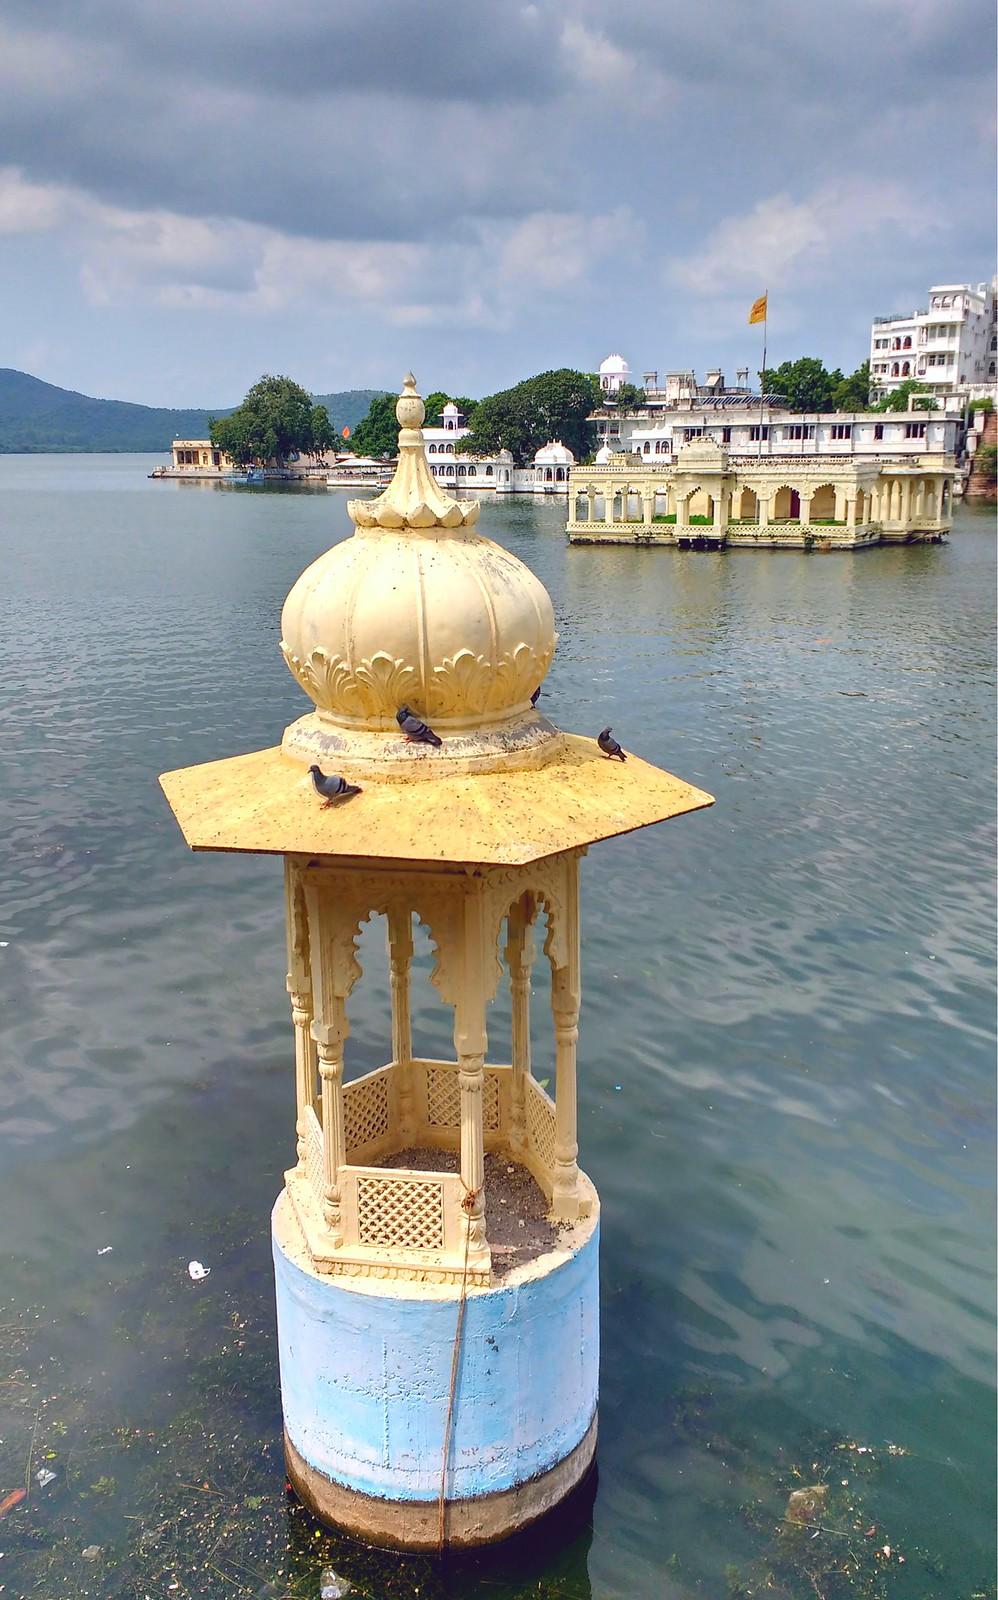 The Chhatri in water